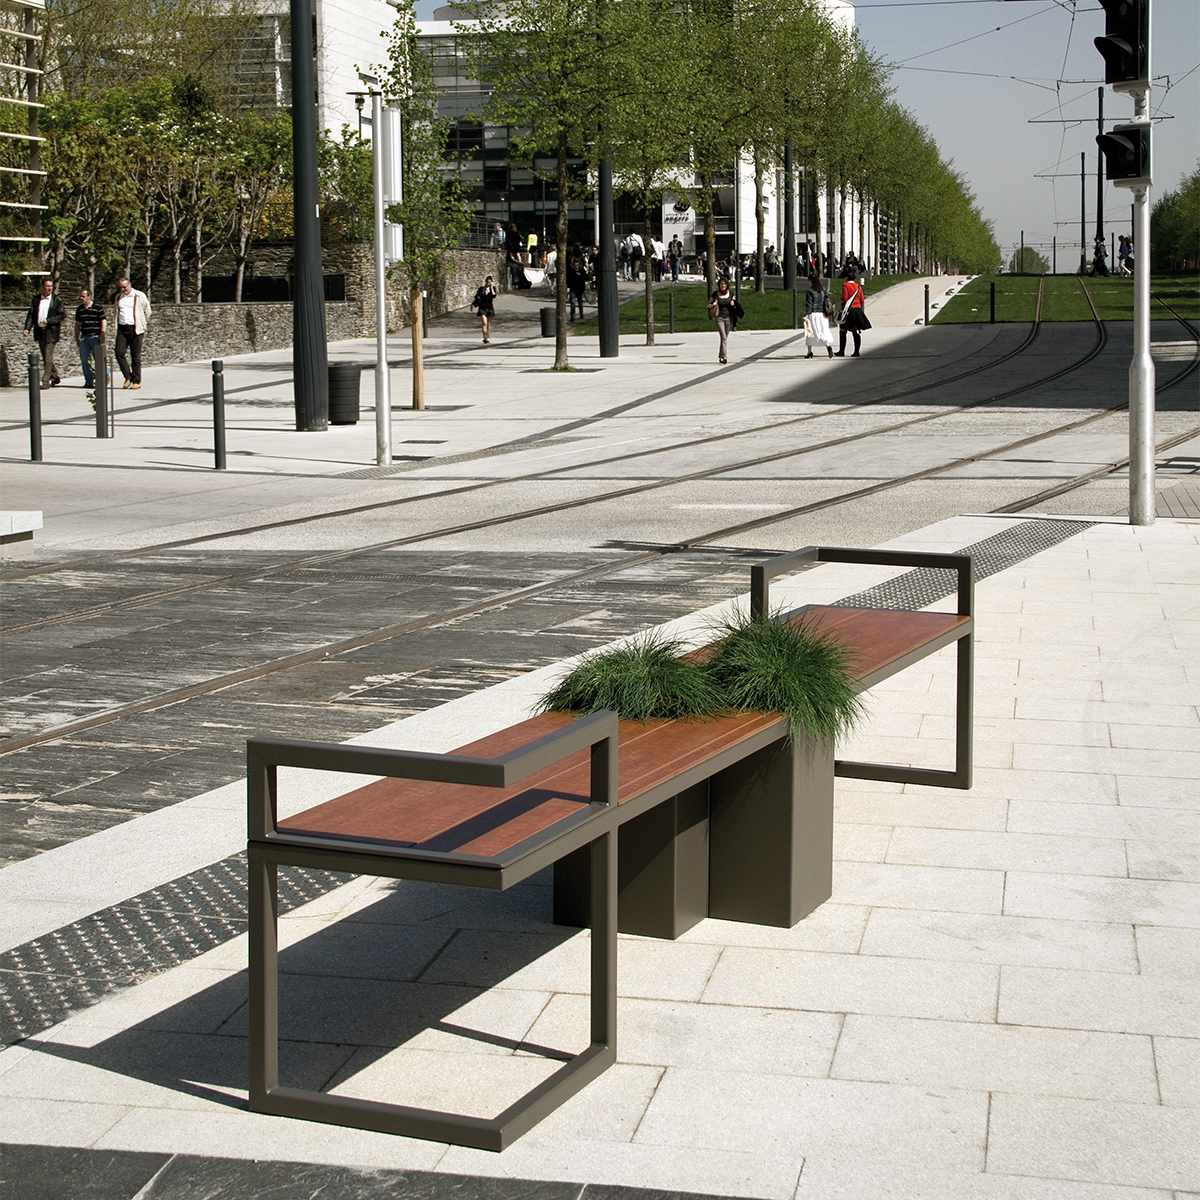 ATECH-eco-district-design-bench-hedera-street-furniture